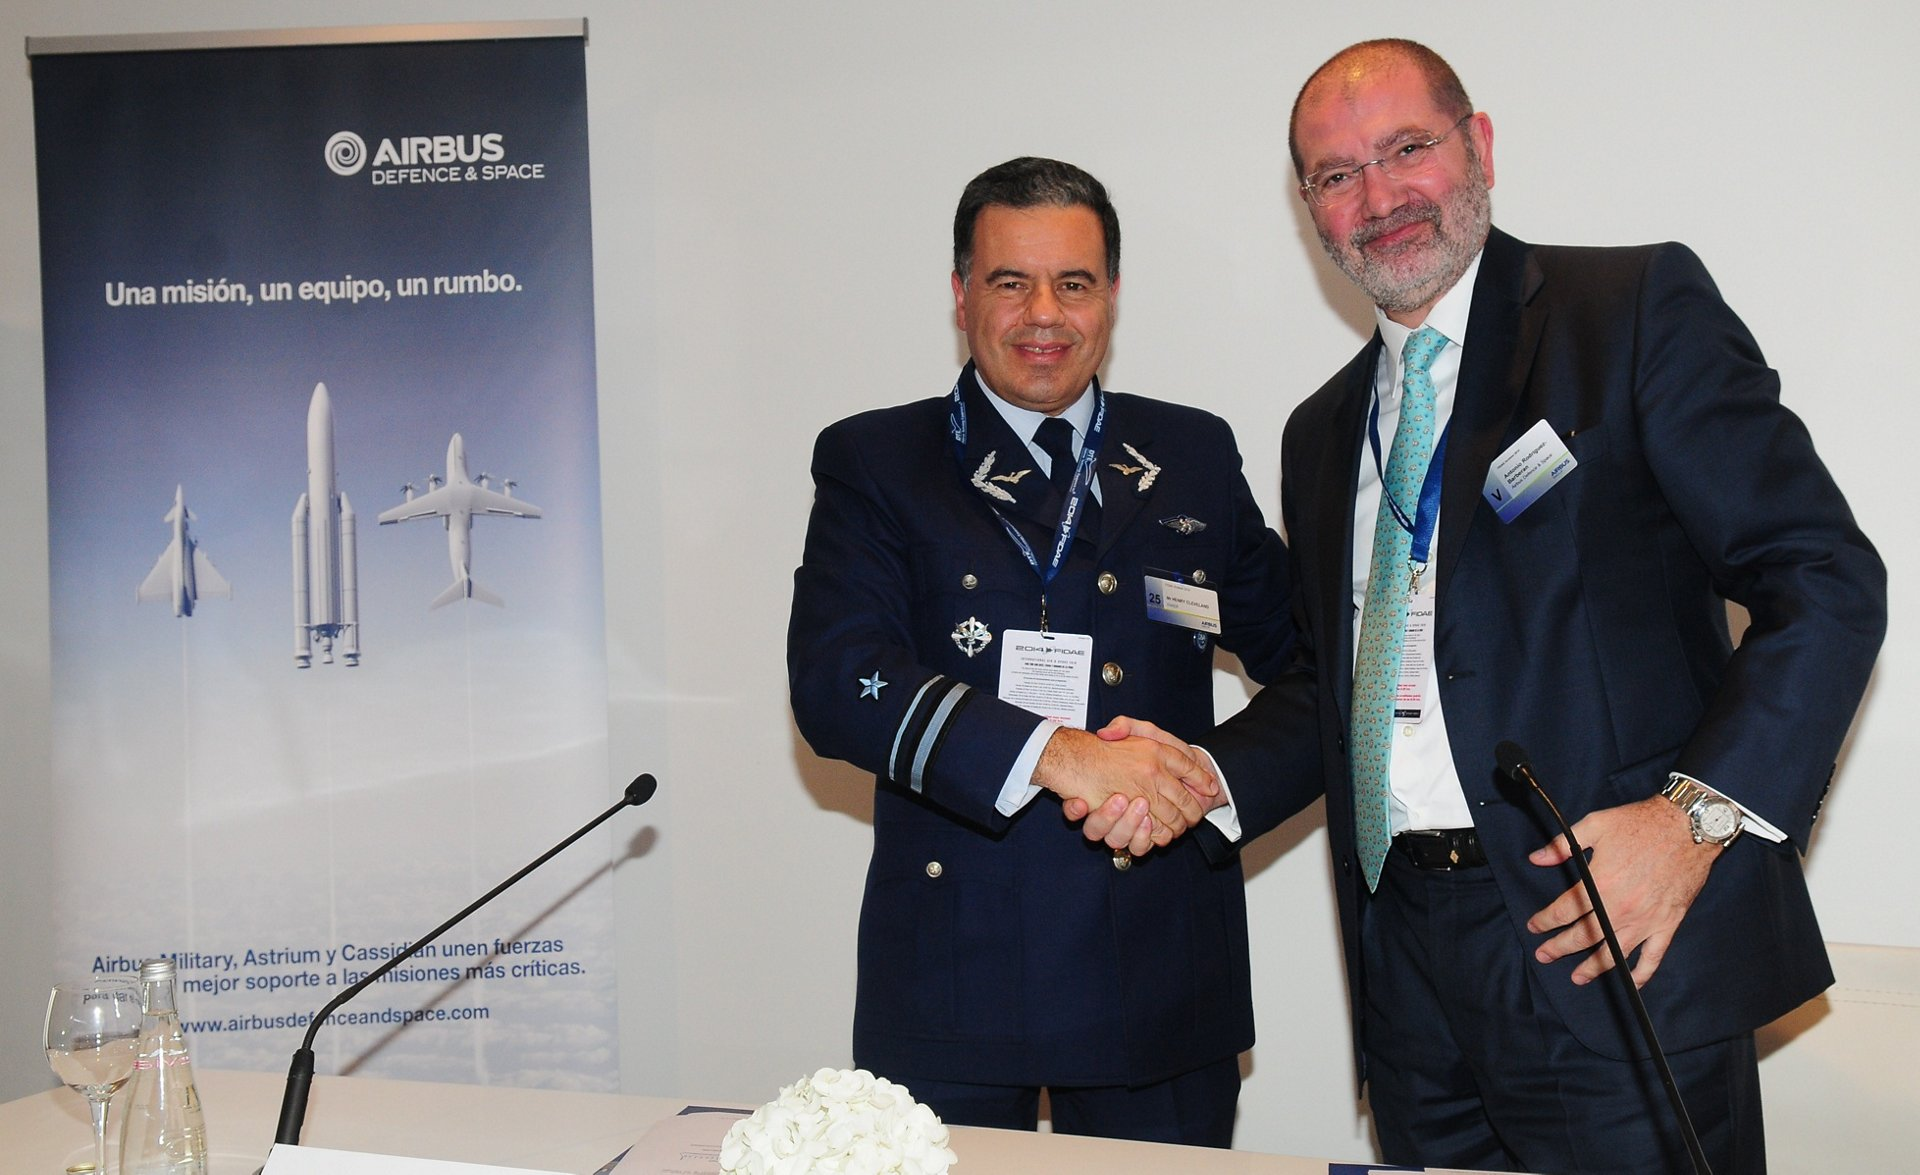 Signature agreement with Enaer to extend existing cooperation on aircraft maintenance and upgrading